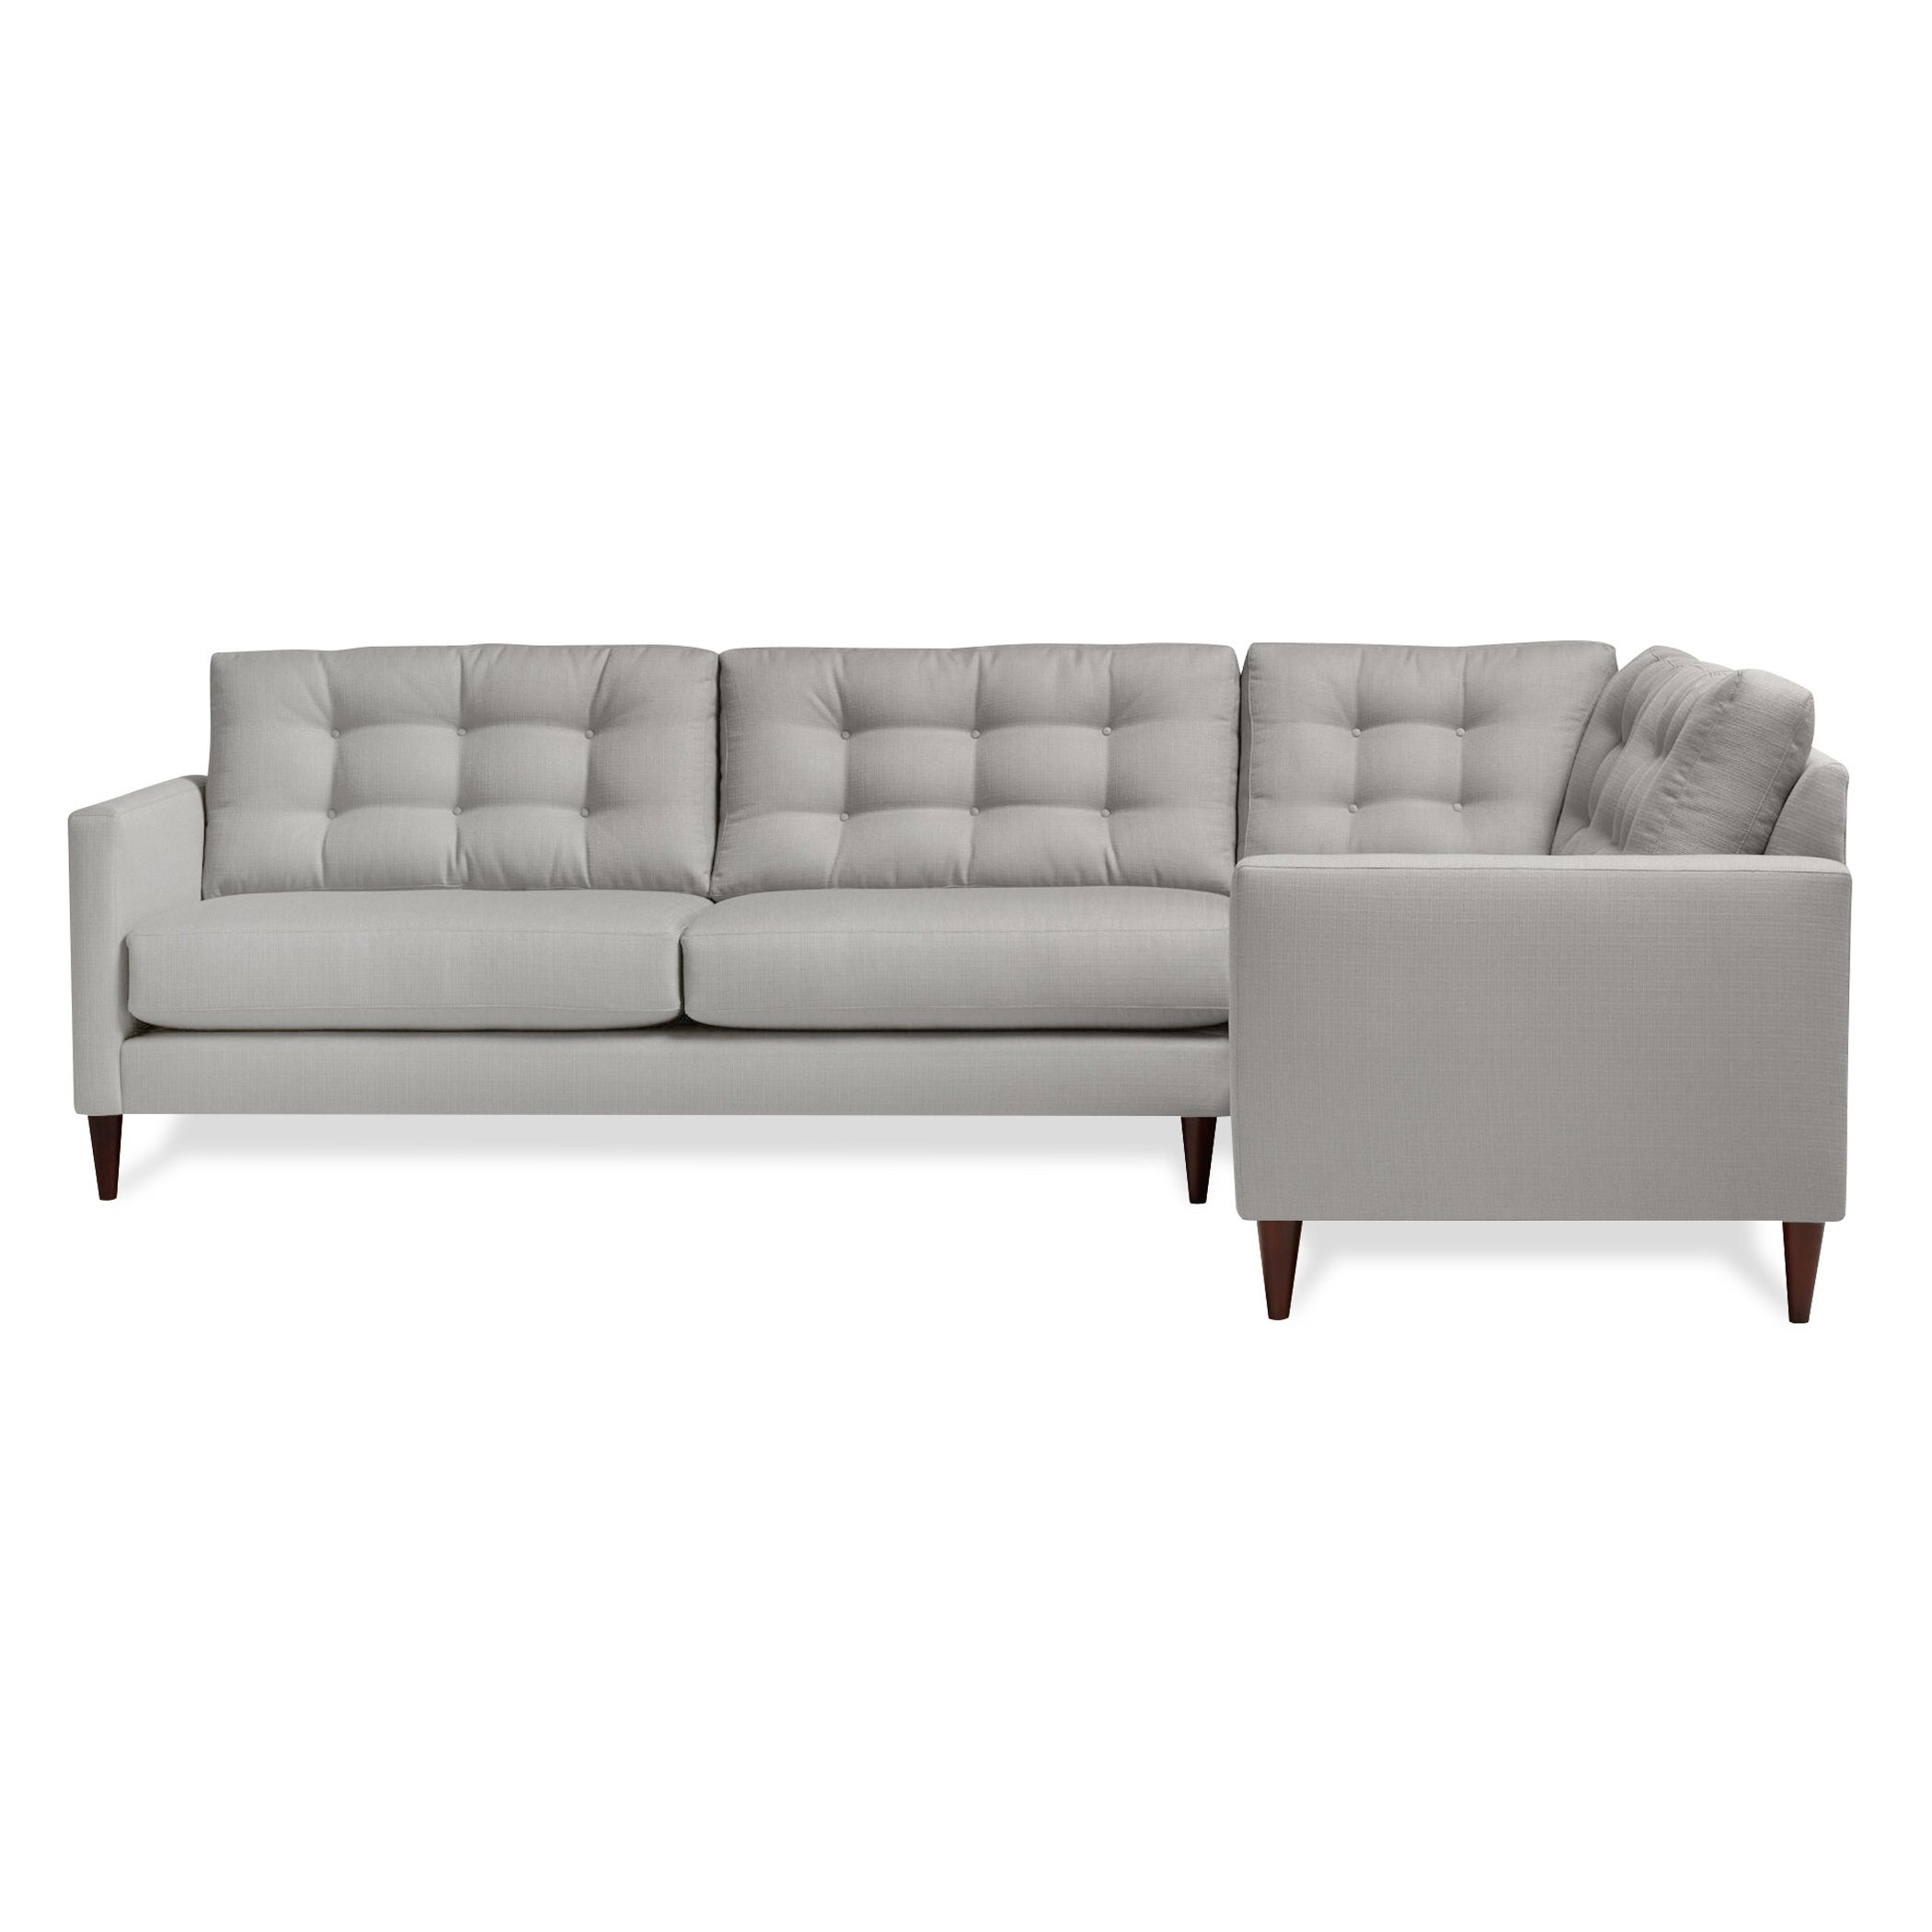 Harvard Mid Century Eco Friendly Fabric Right Facing Tufted Sectional Sofa Free Shipping Today 16915029